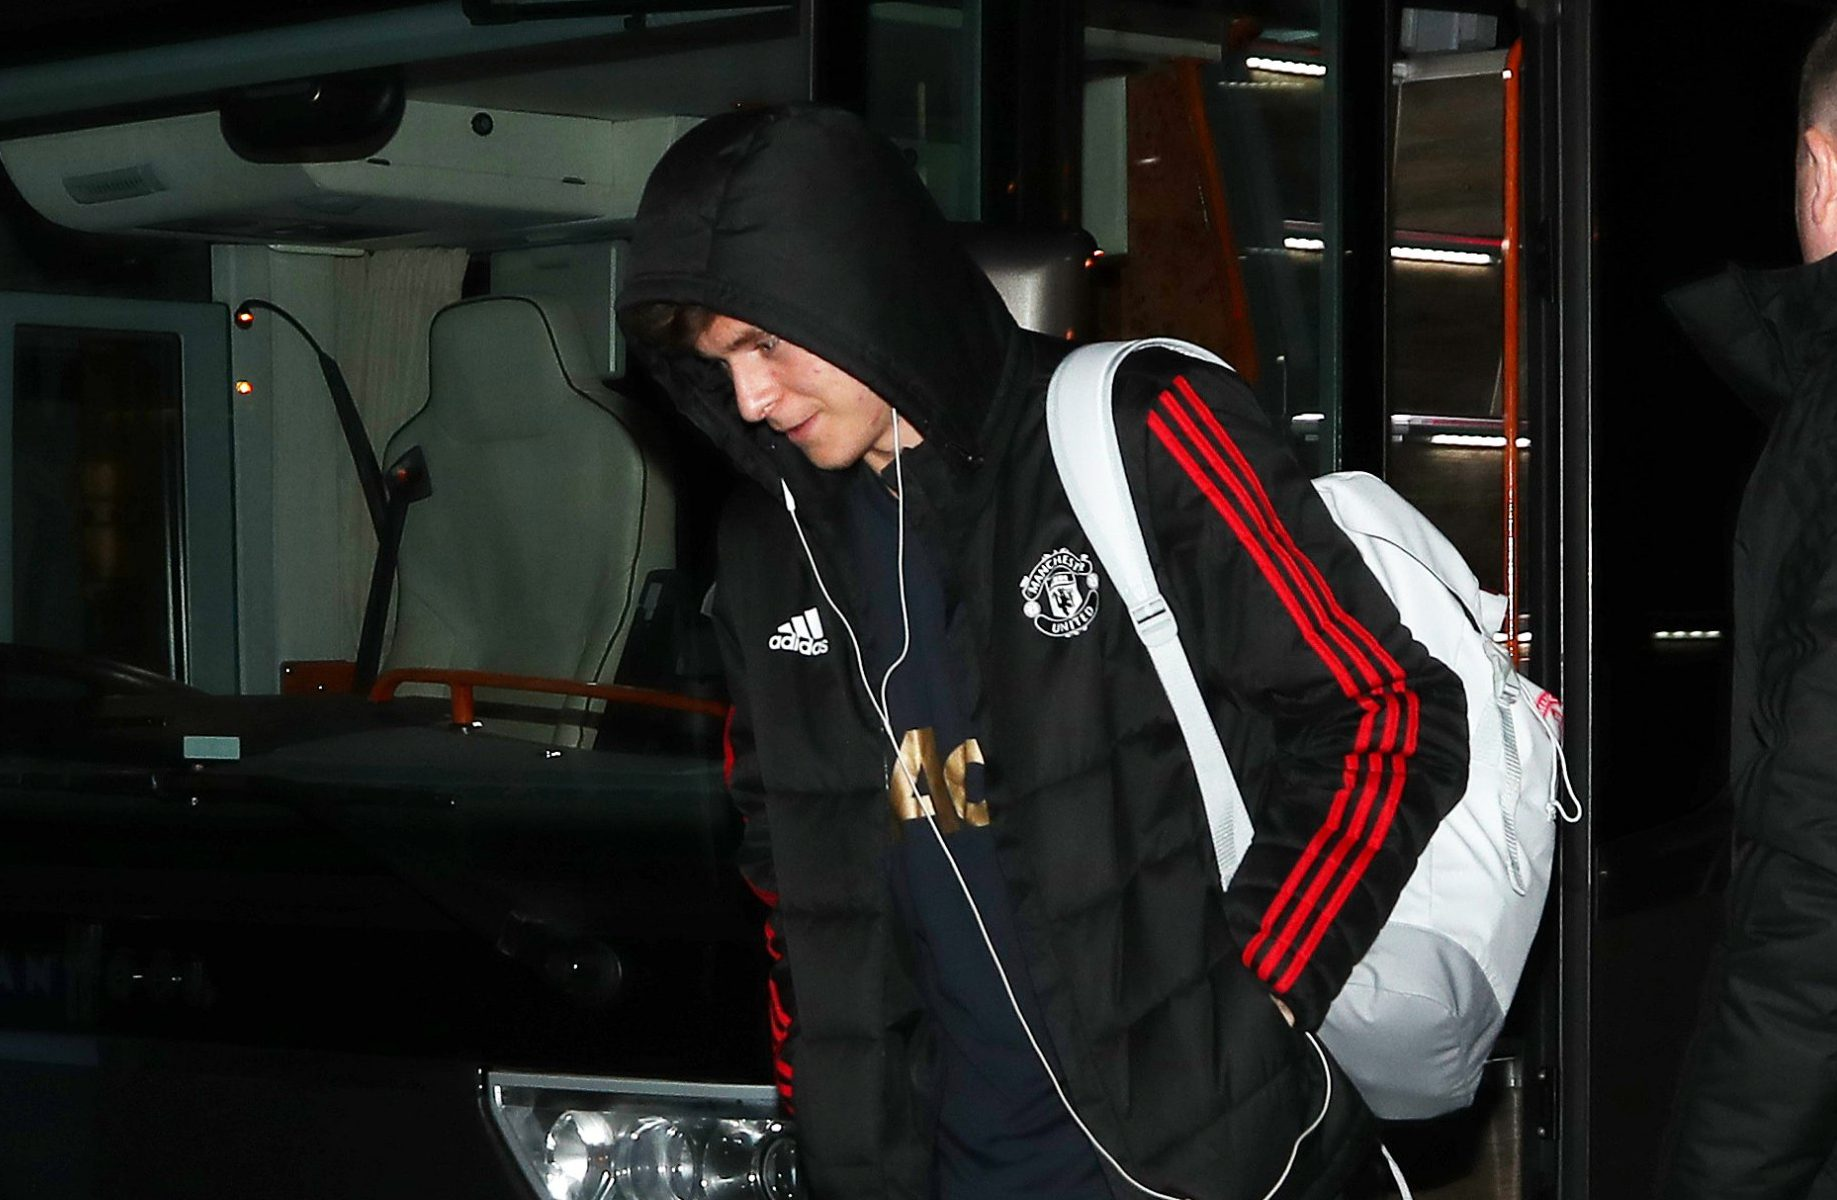 11.2.19??????. The Manchester United team arrive at the Hilton Garden Hotel at Old Trafford Cricket Ground on Monday for their Champions League match against PSG on Tuesday. The hotel is 1000 yards away from Old Trafford Football Stadium ????????????. Victor Lindelof.